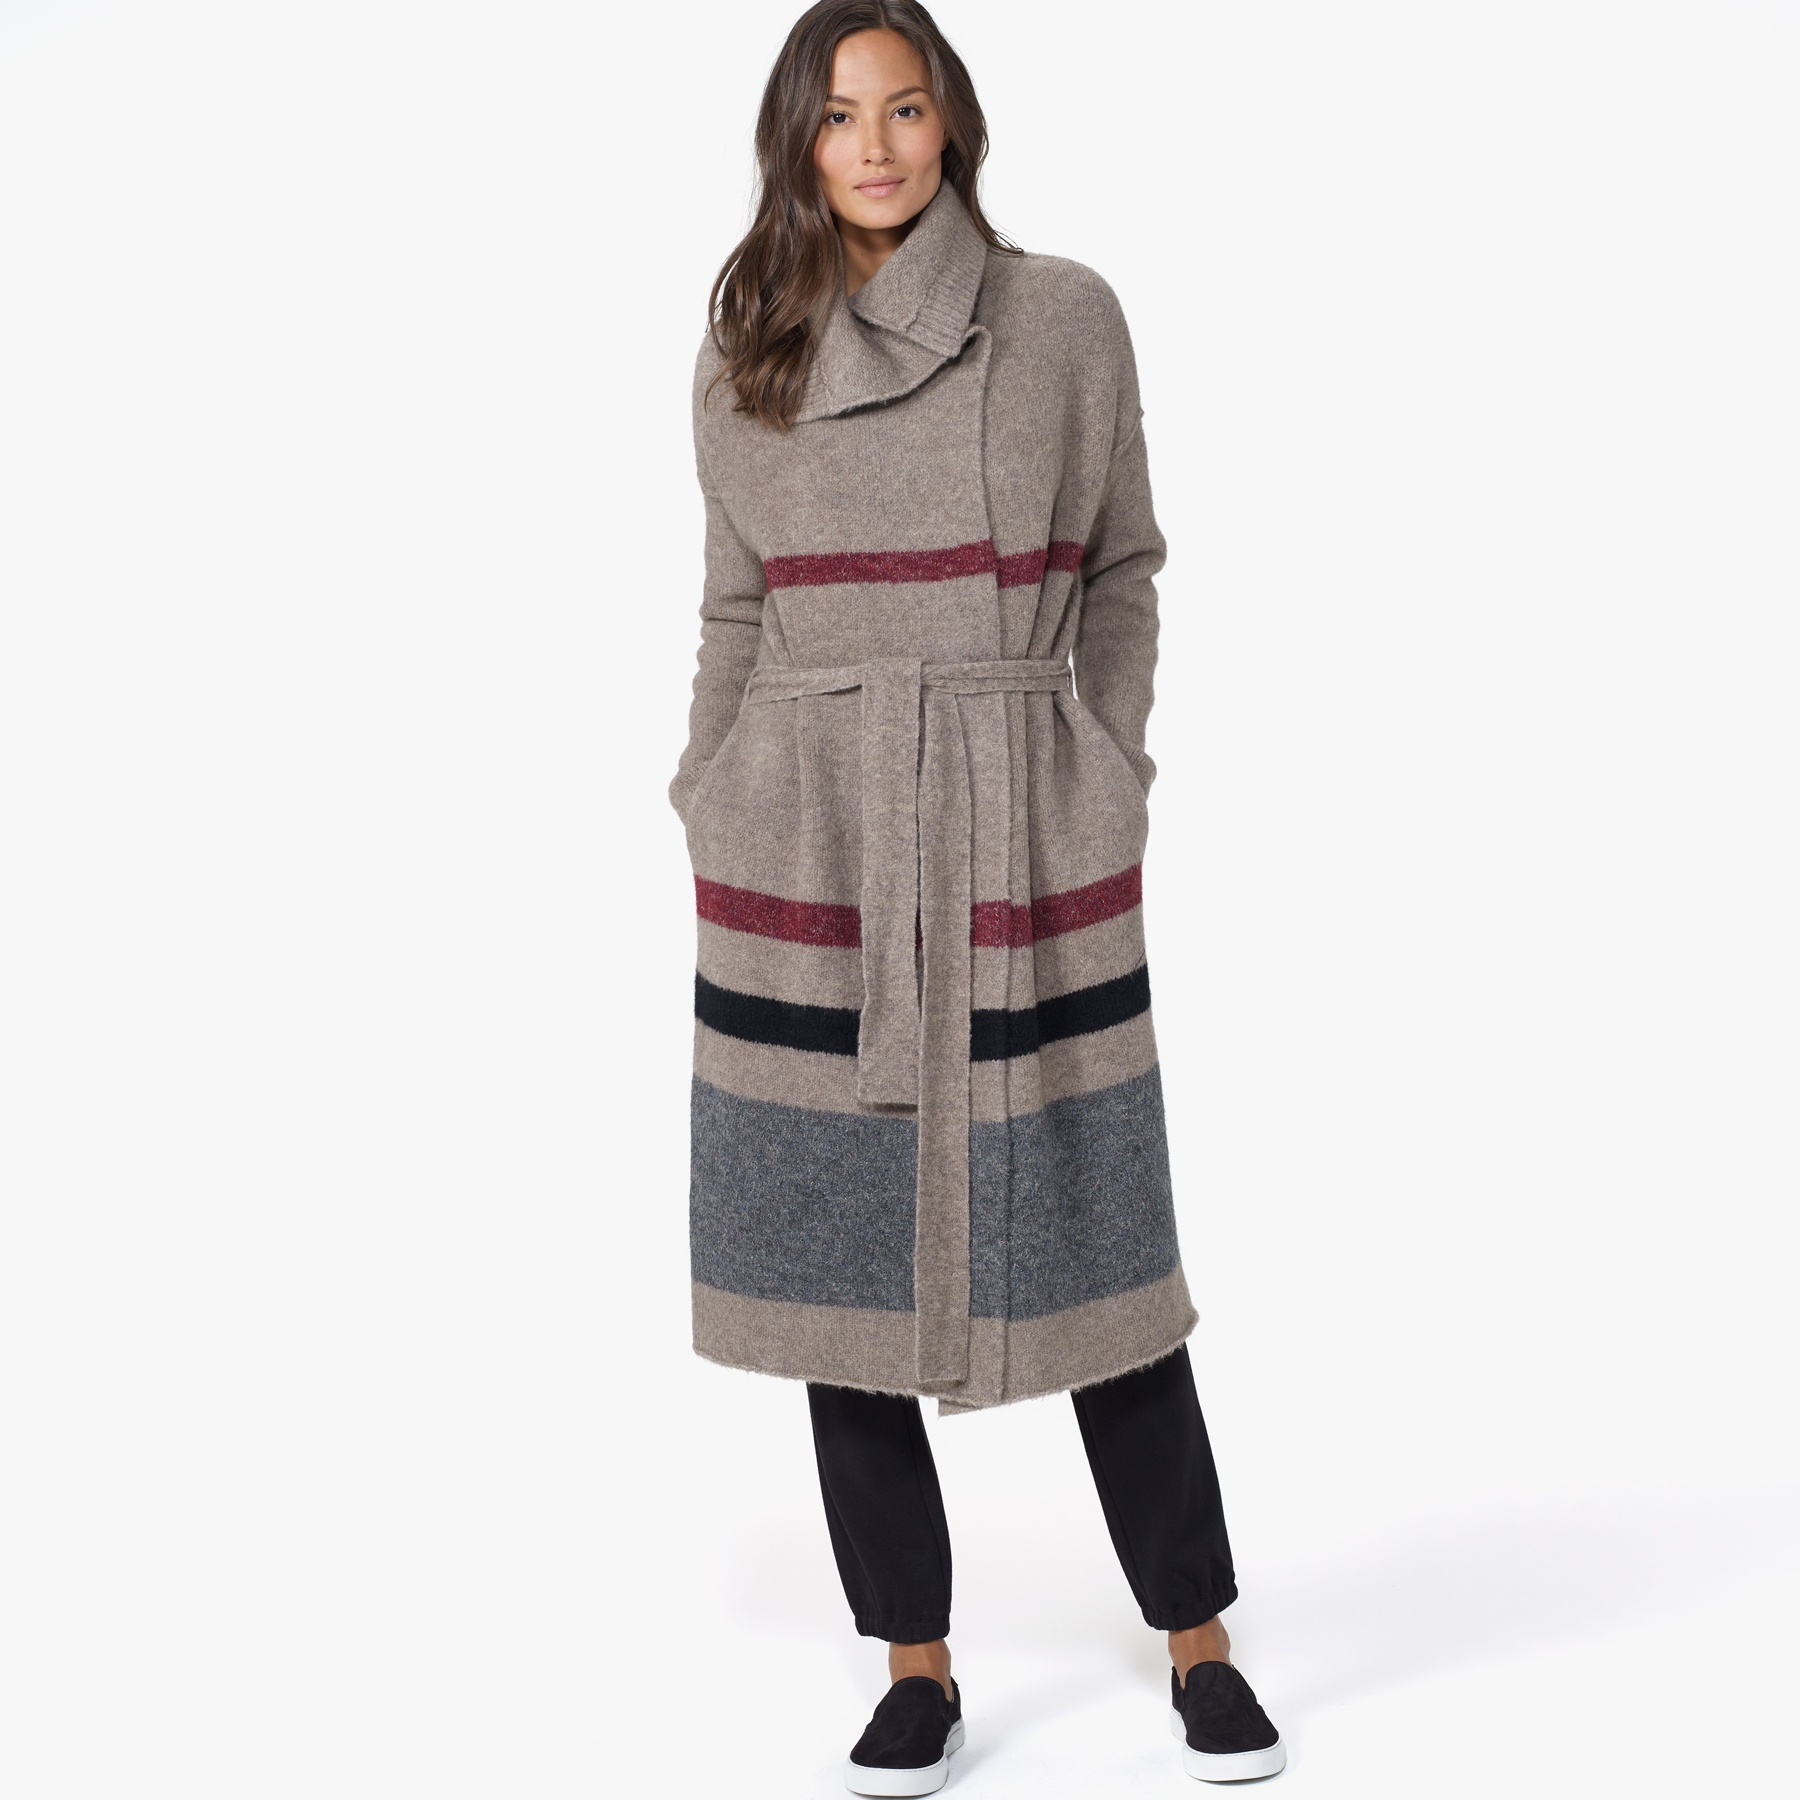 James perse Belted Striped Sweater Coat in Gray   Lyst